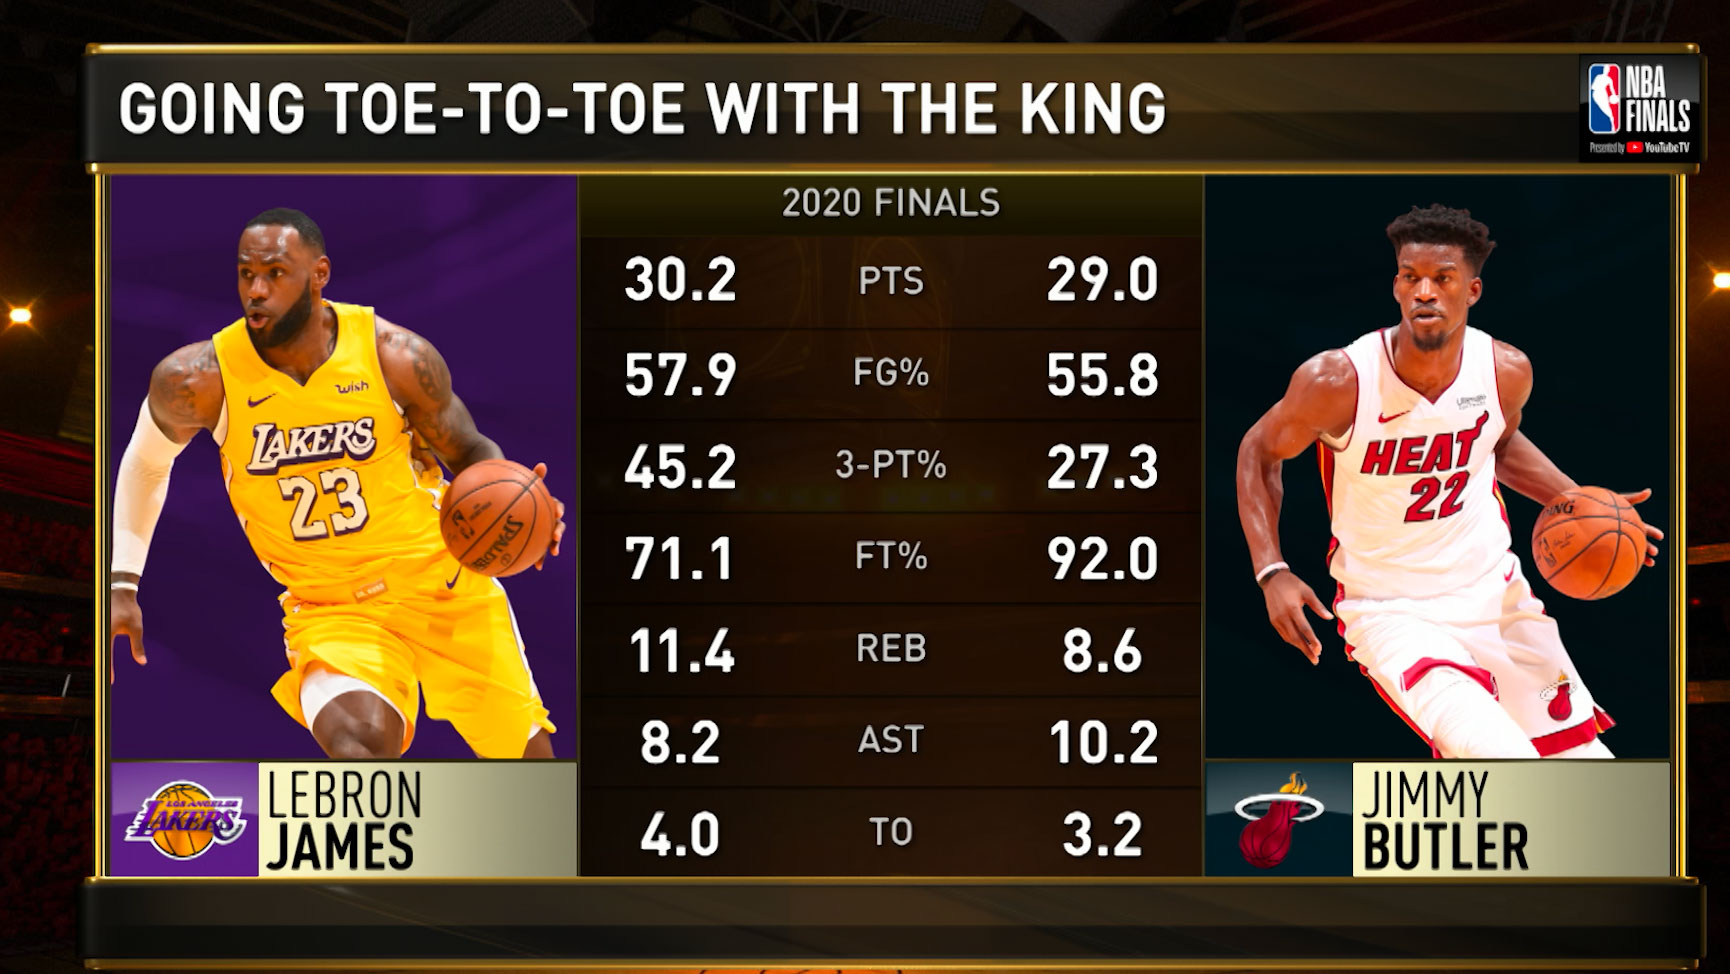 Going toe-to-toe with The King